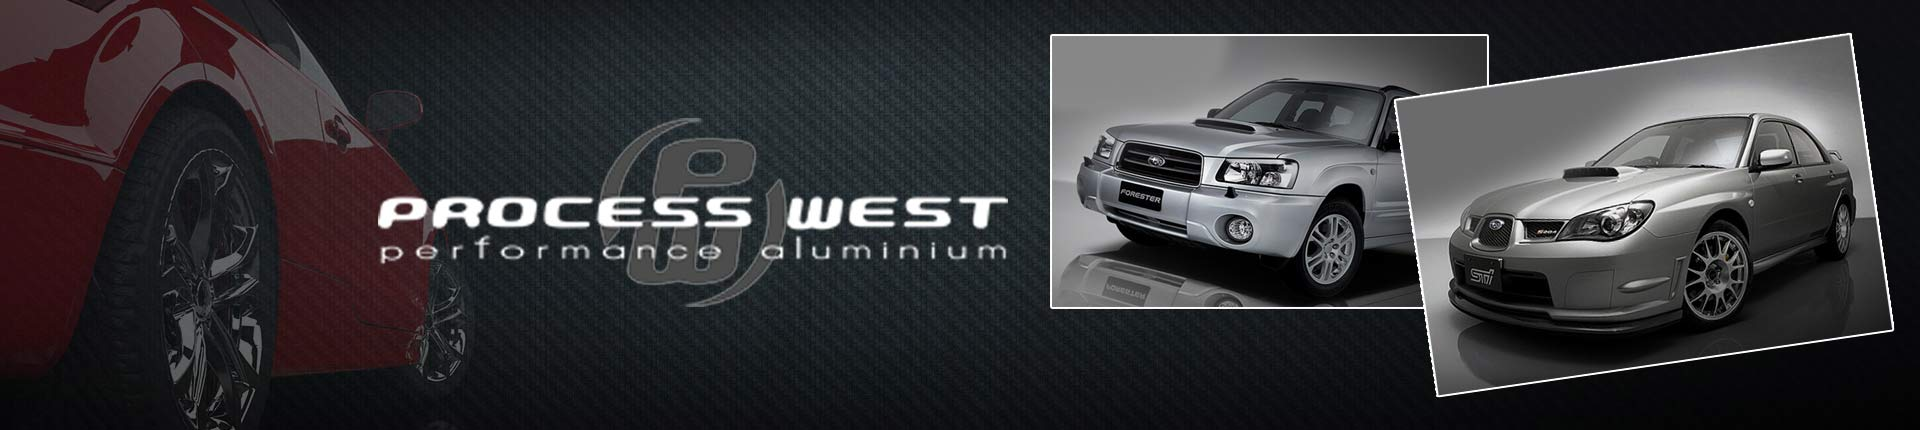 process west performance vehicles